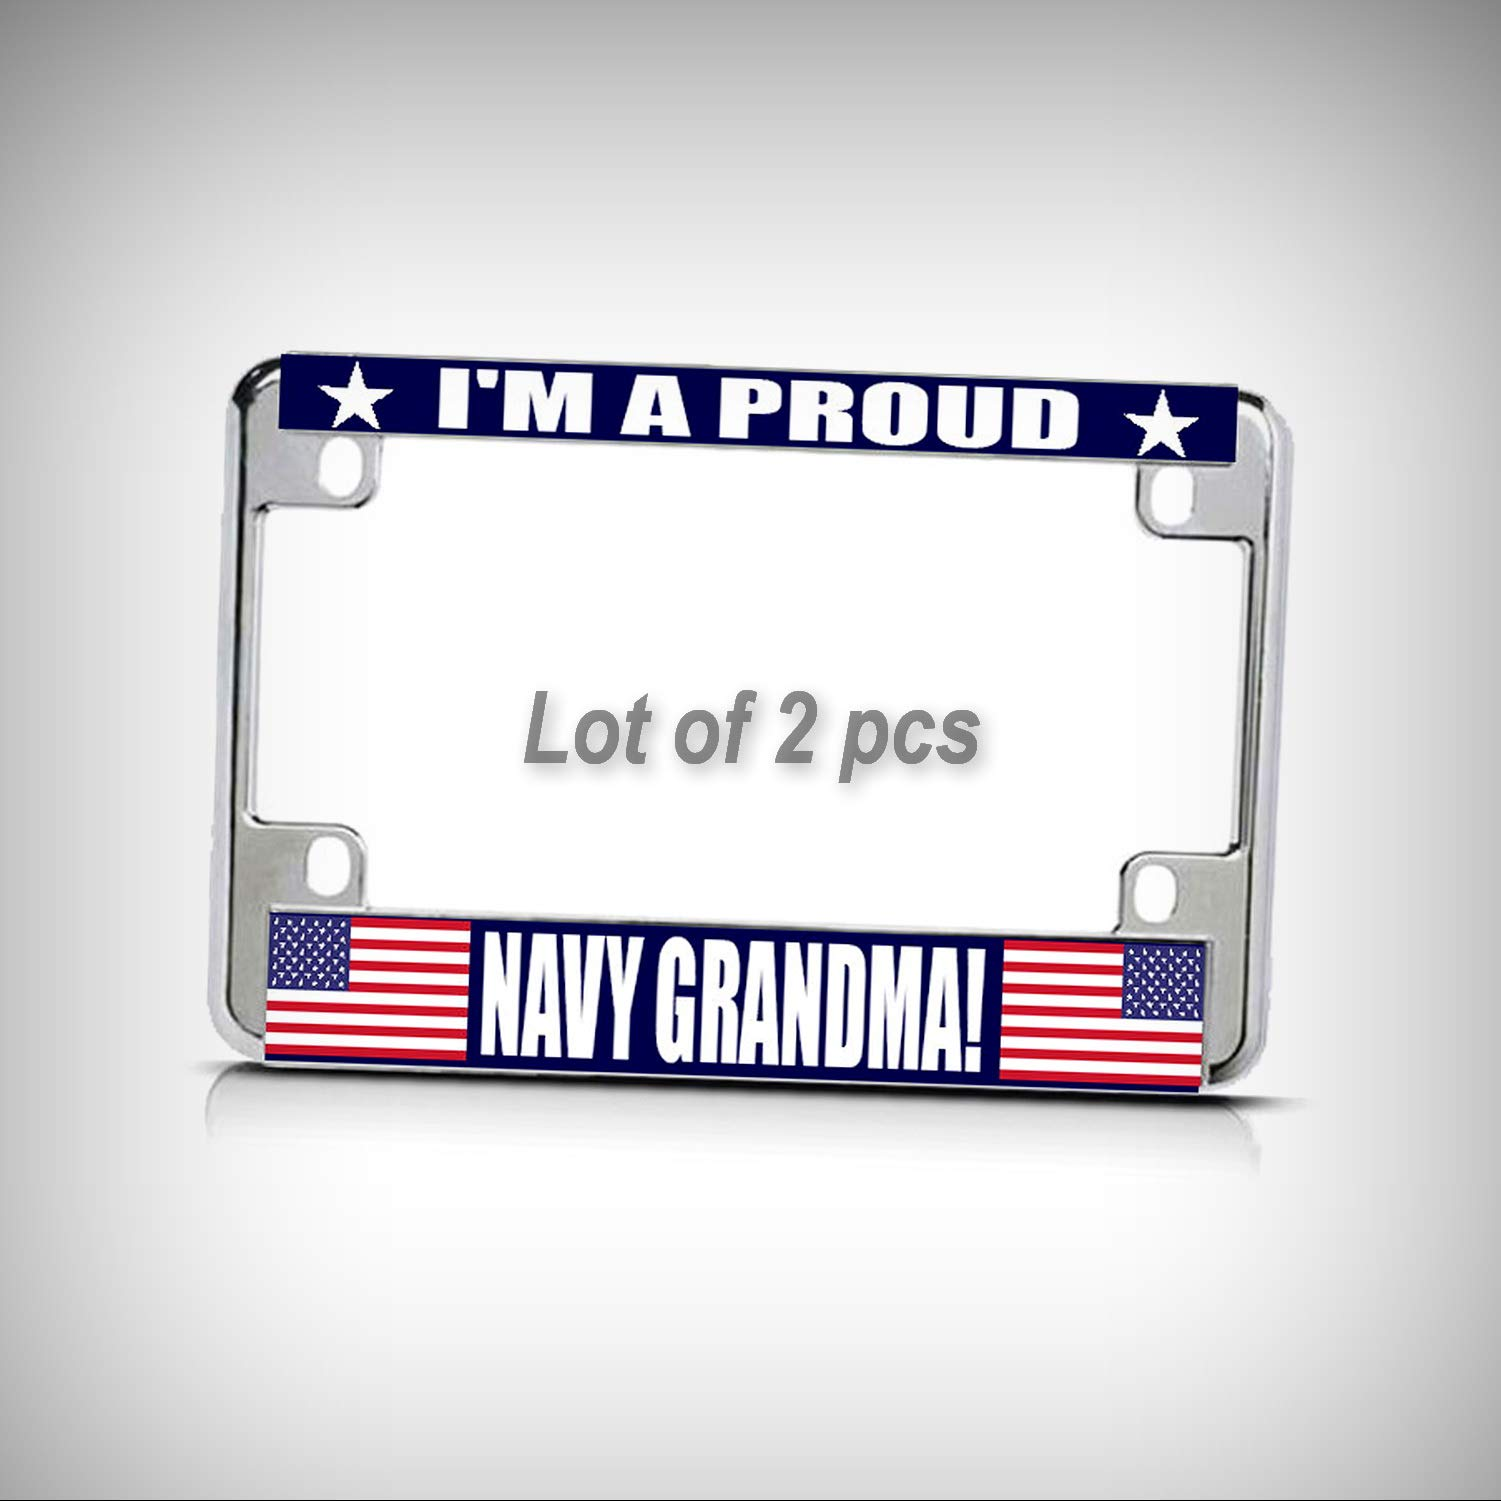 Set of 2 Pcs - Navy Grandma! White Blue Chrome Metal Bike Motorcycle Tag Holder License Plate Frame Decorative Border